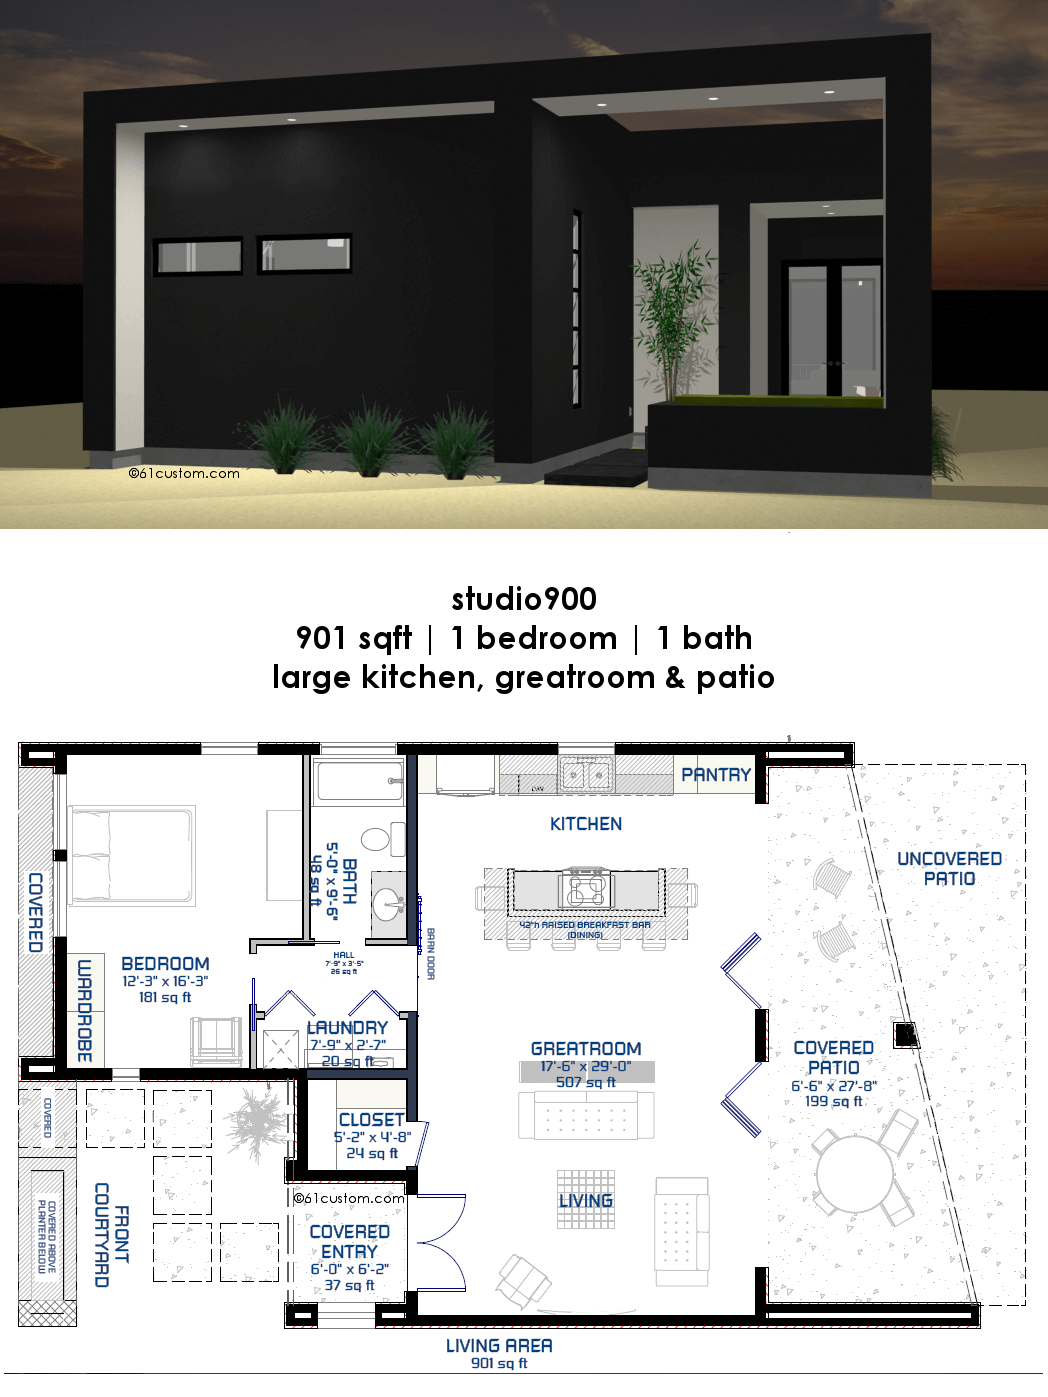 Studio900 small modern house plan with courtyard 61custom for Modern plan